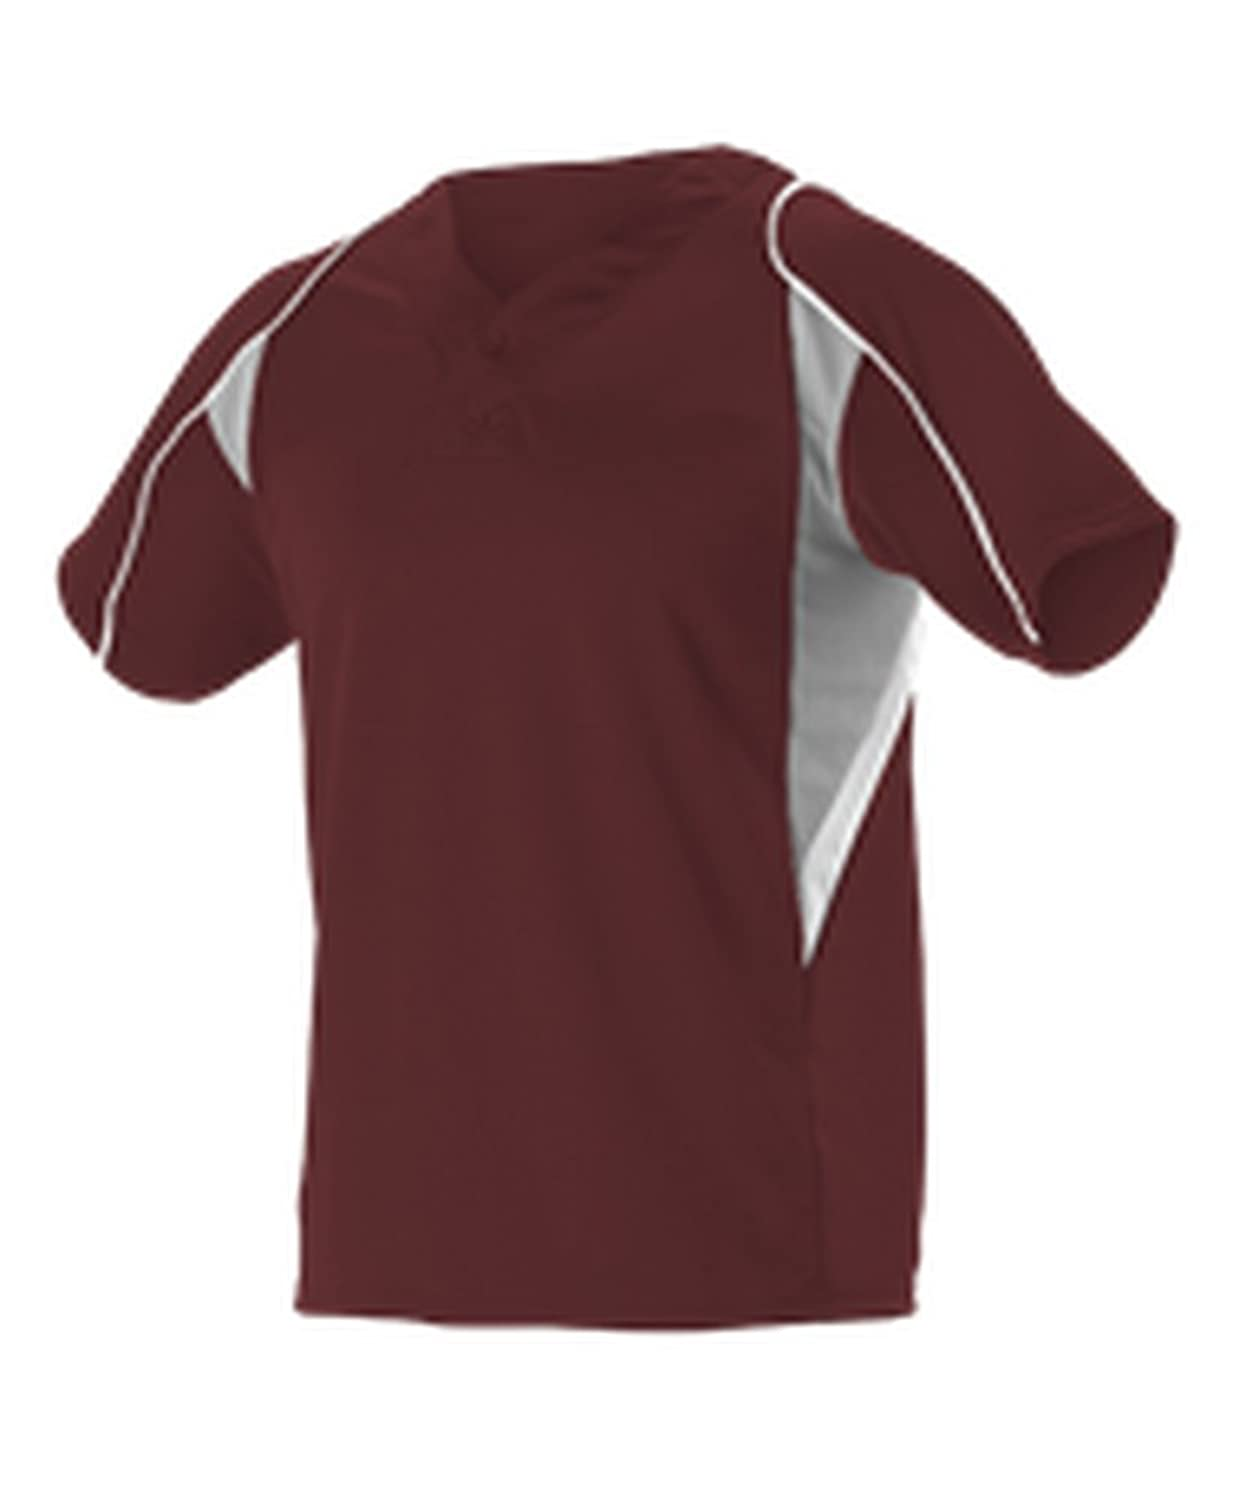 Alleson Athletic SHIRT ボーイズ B076BMH6FGMaroon, Grey, White Small